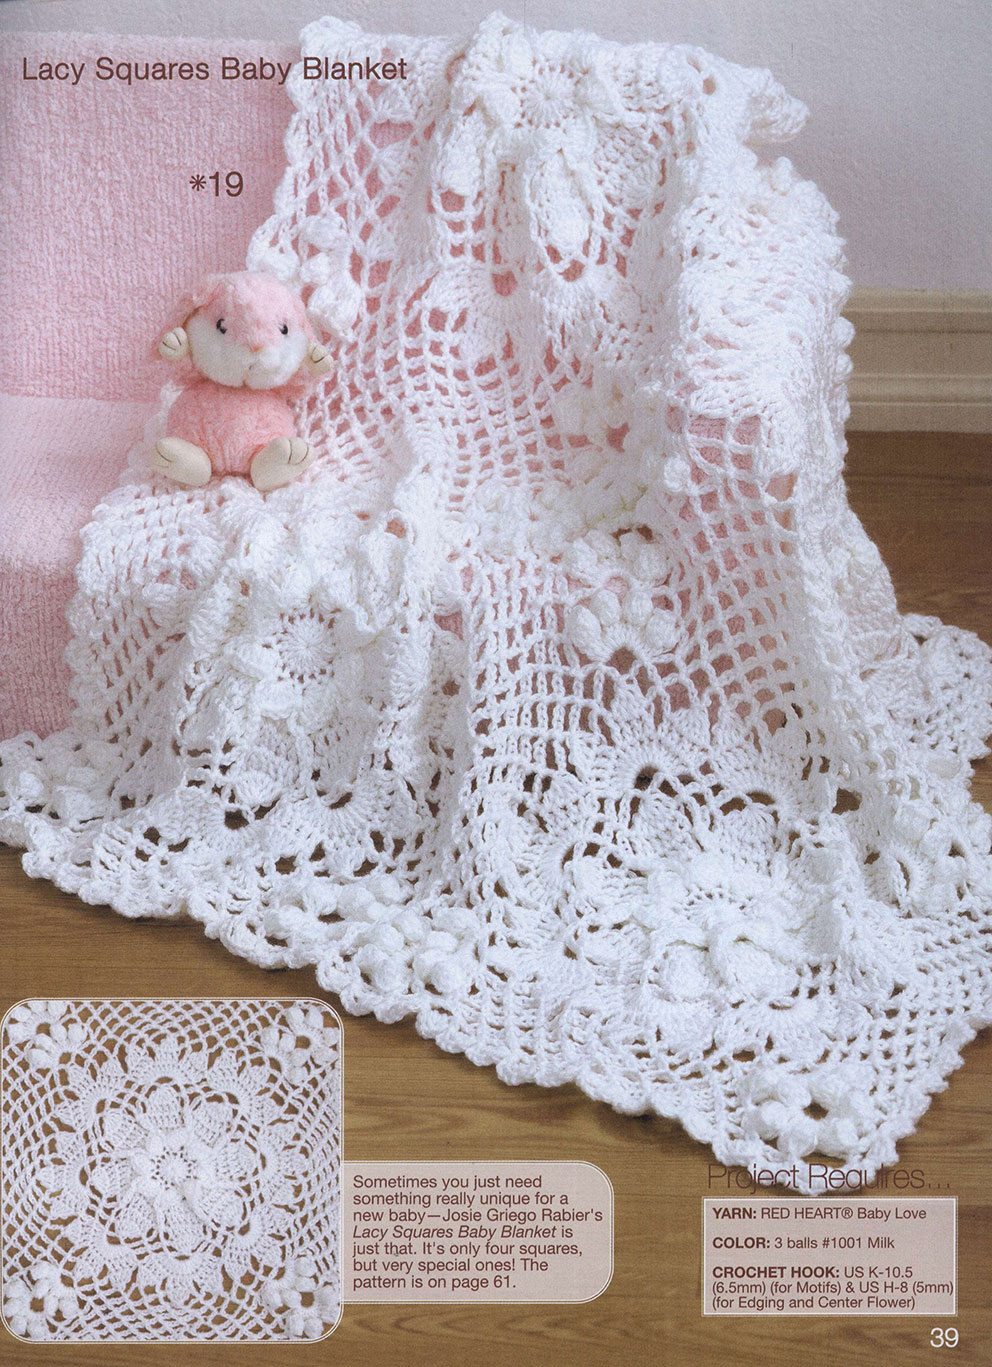 Crochet Patterns Baby Quilts : Lace Squares Crochet Baby Blanket ? Crochet Kingdom